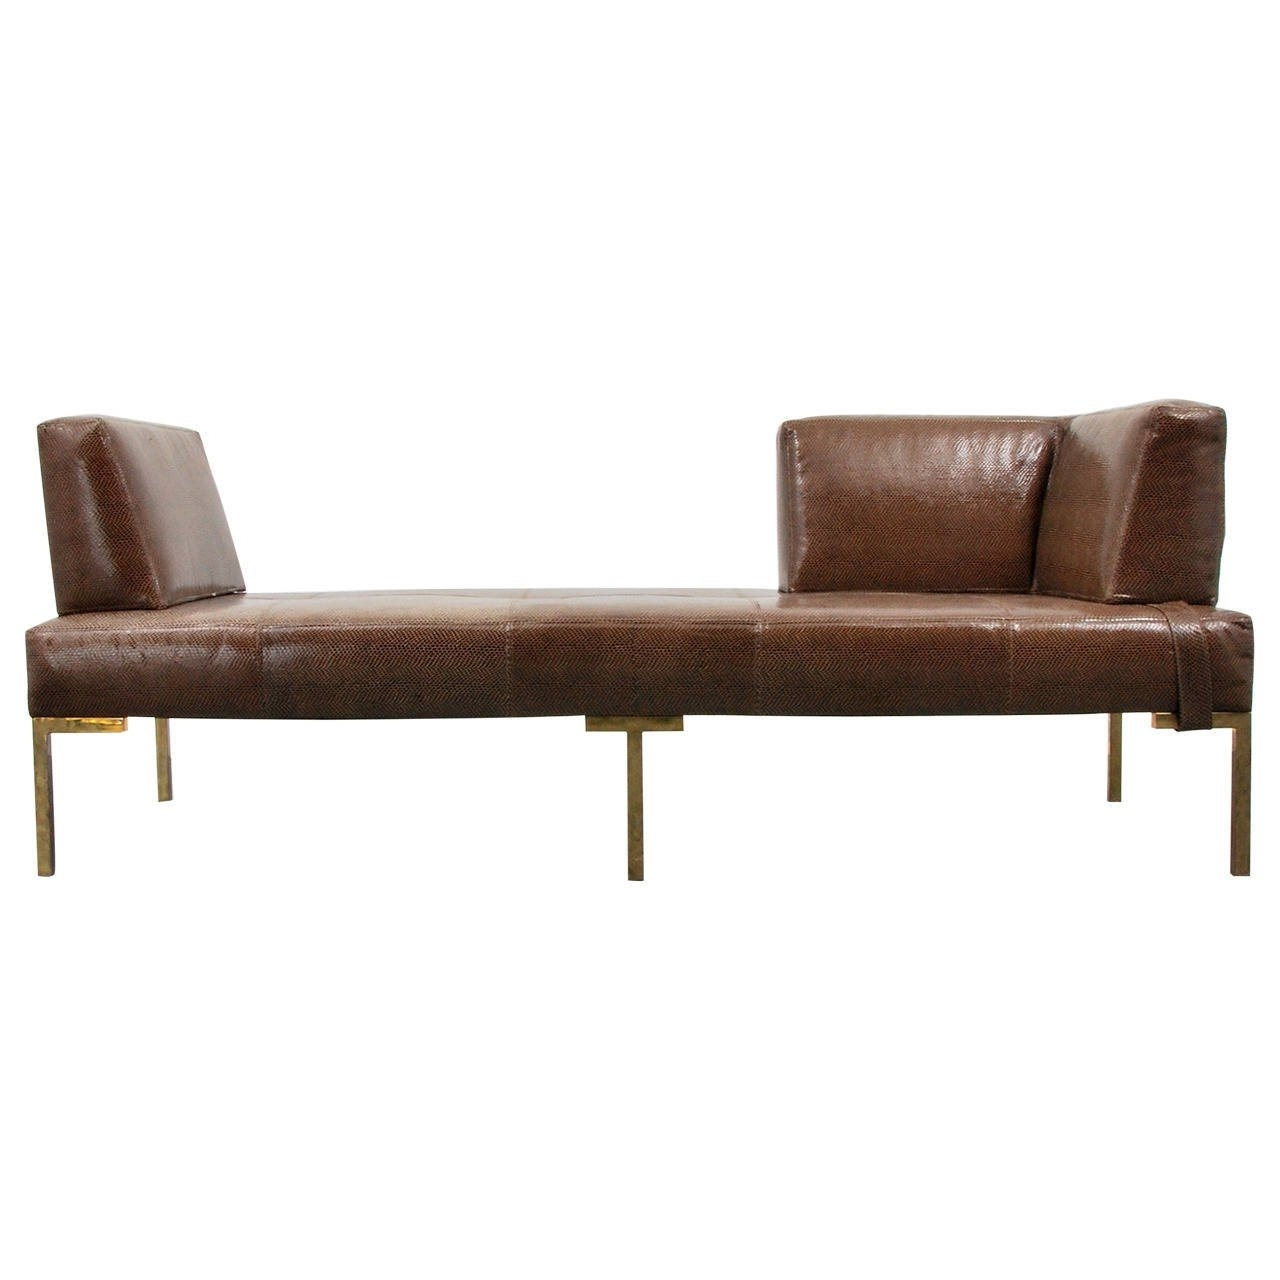 Well Known Chaise Lounge Daybeds Regarding Luigi Gentile Leather Daybeds Or Chaise Lounges, Two Available At (View 15 of 15)